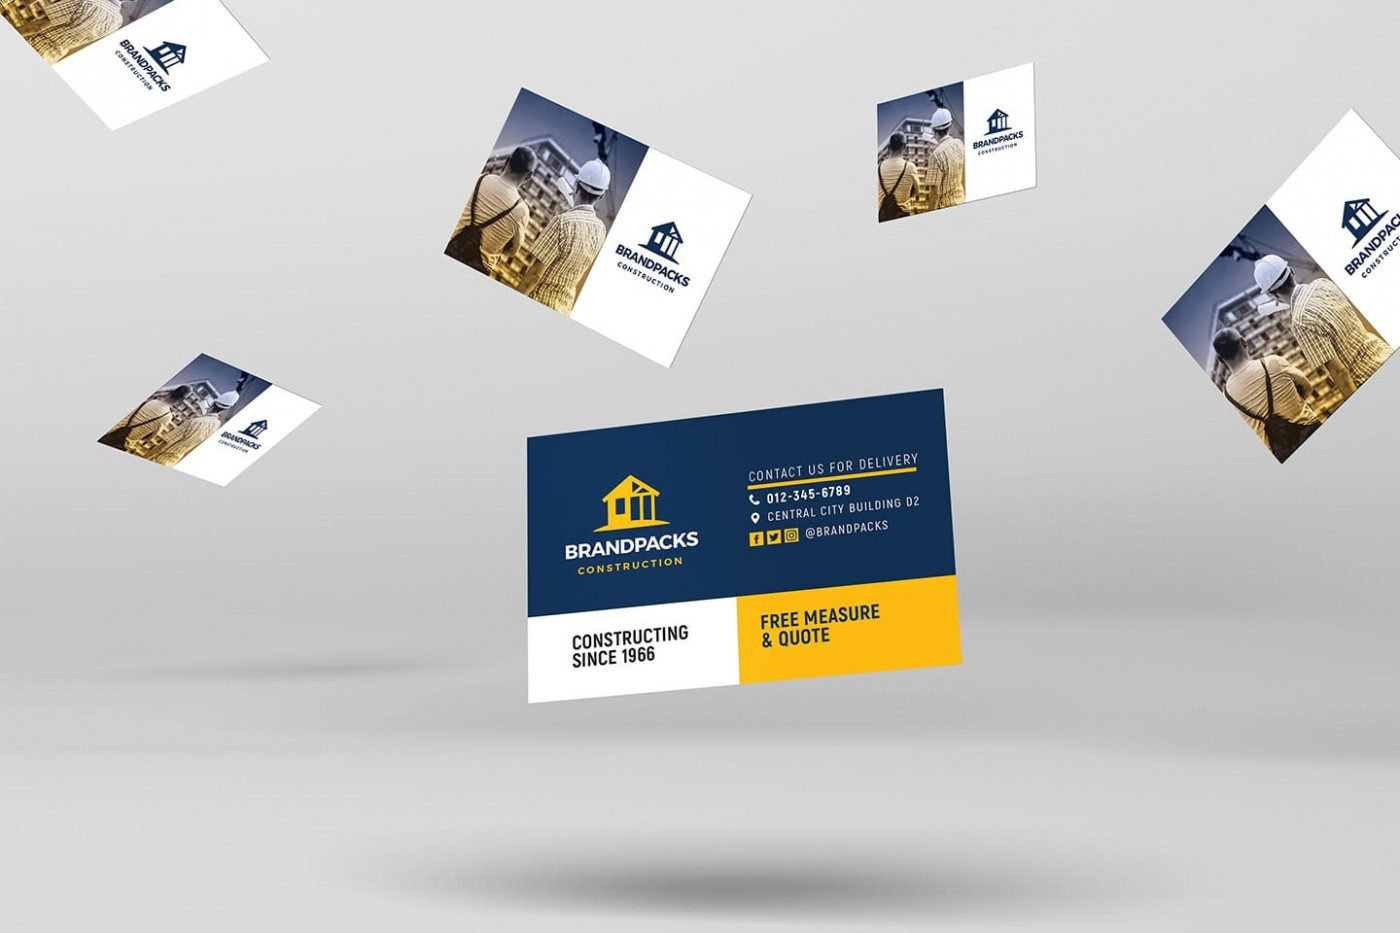 006 Imposing Construction Busines Card Template High Resolution  Company Visiting Format Word For Material1400